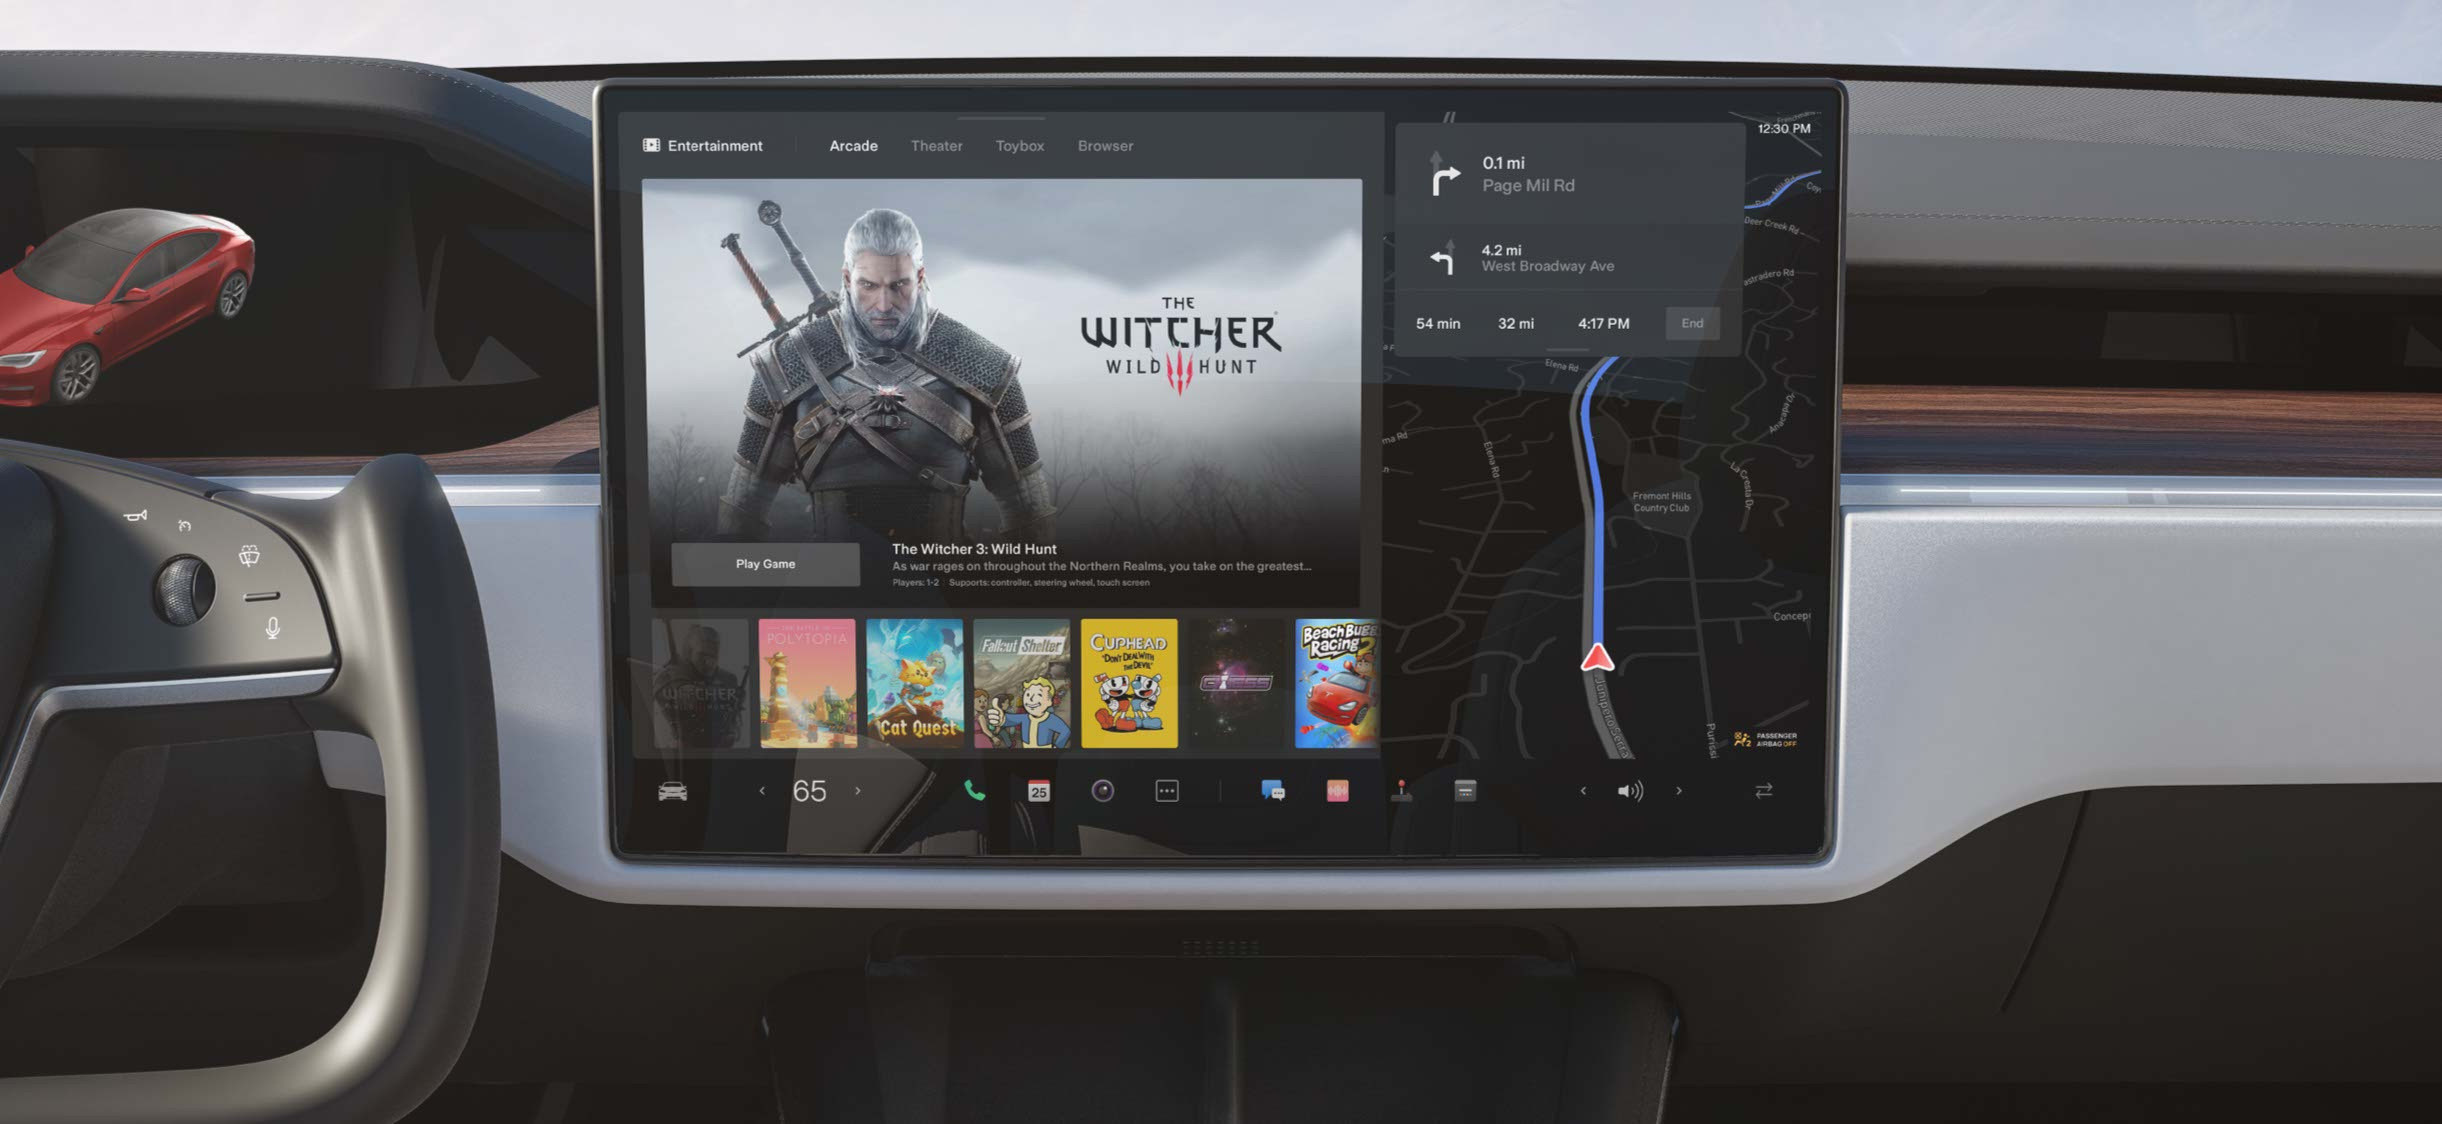 Model S center display with selection of entertainment